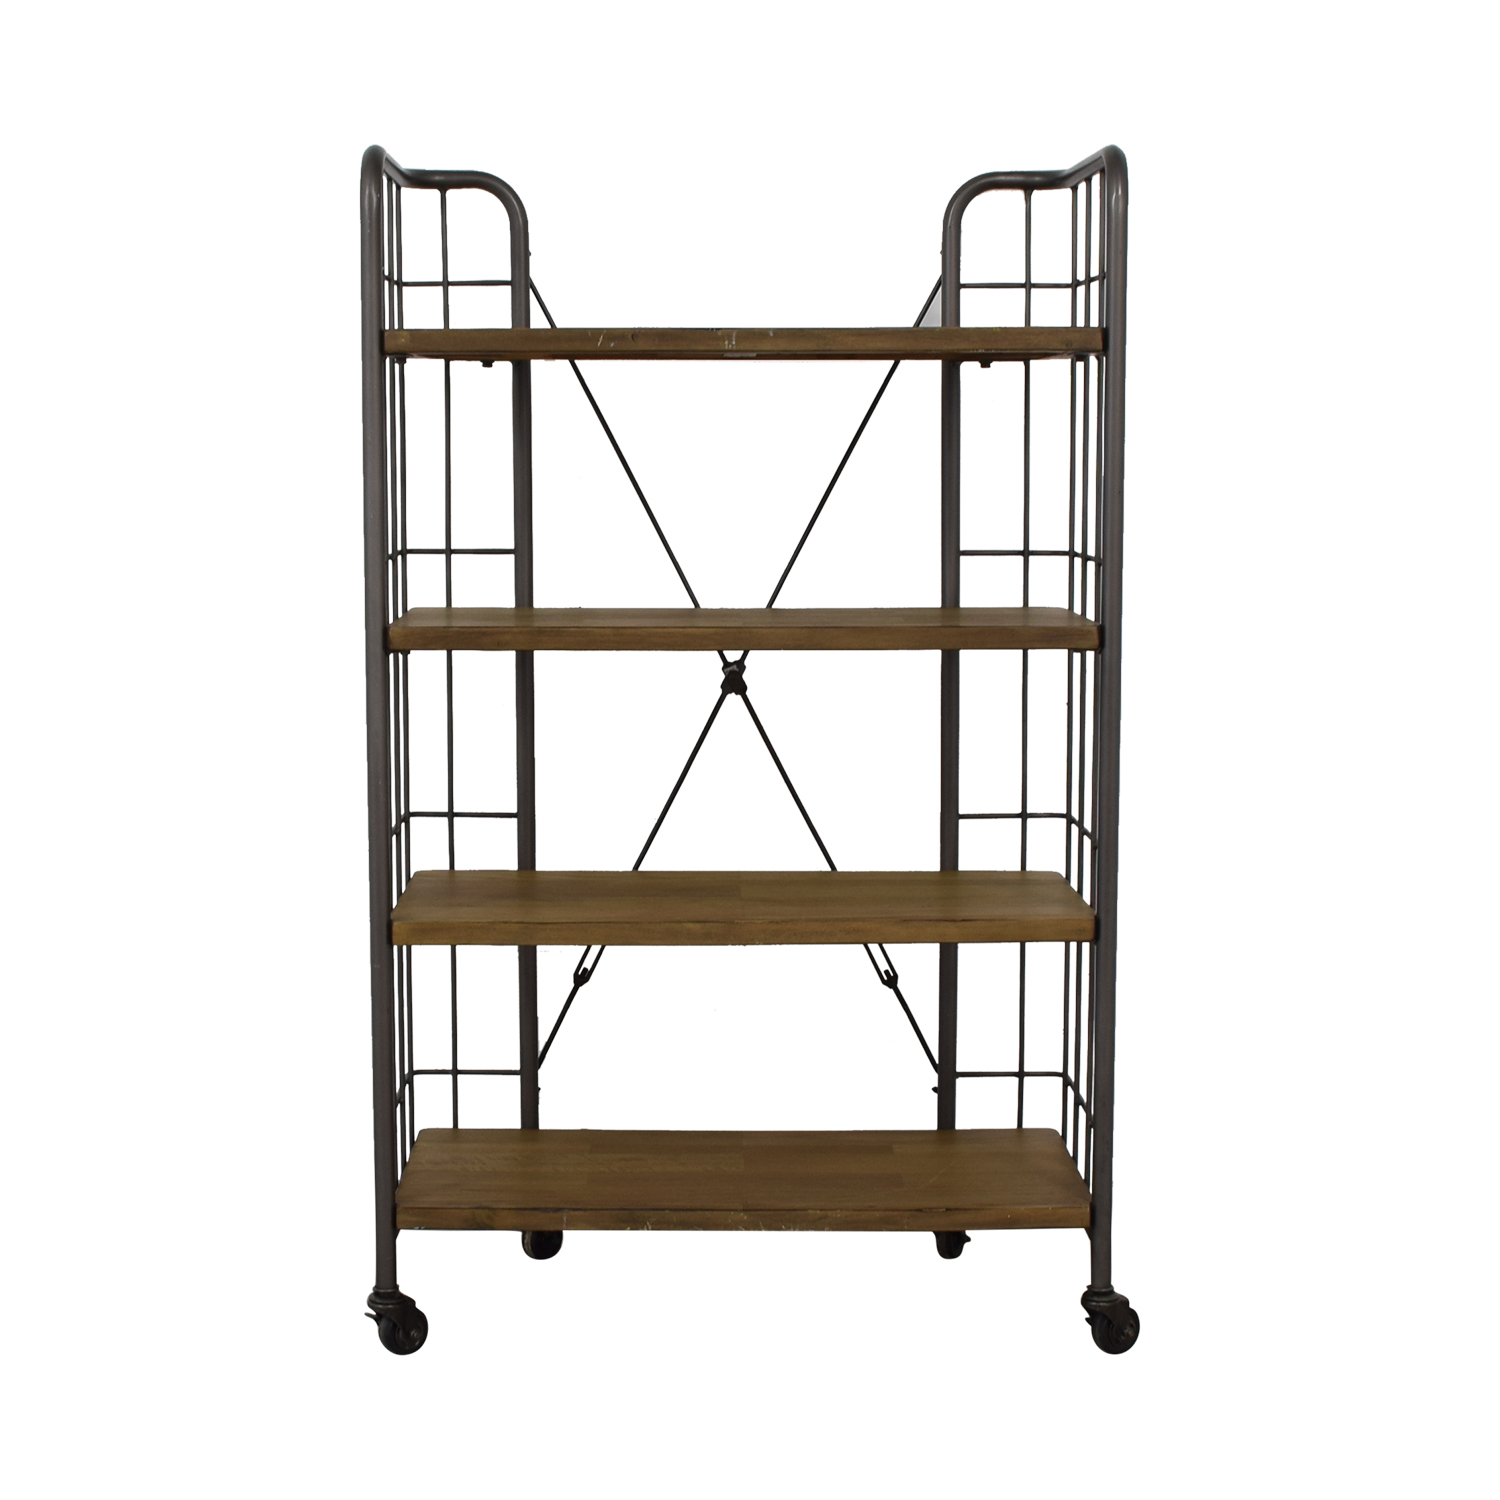 World Market World Market Industrial Four-Tier Shelves with Casters Utility Tables